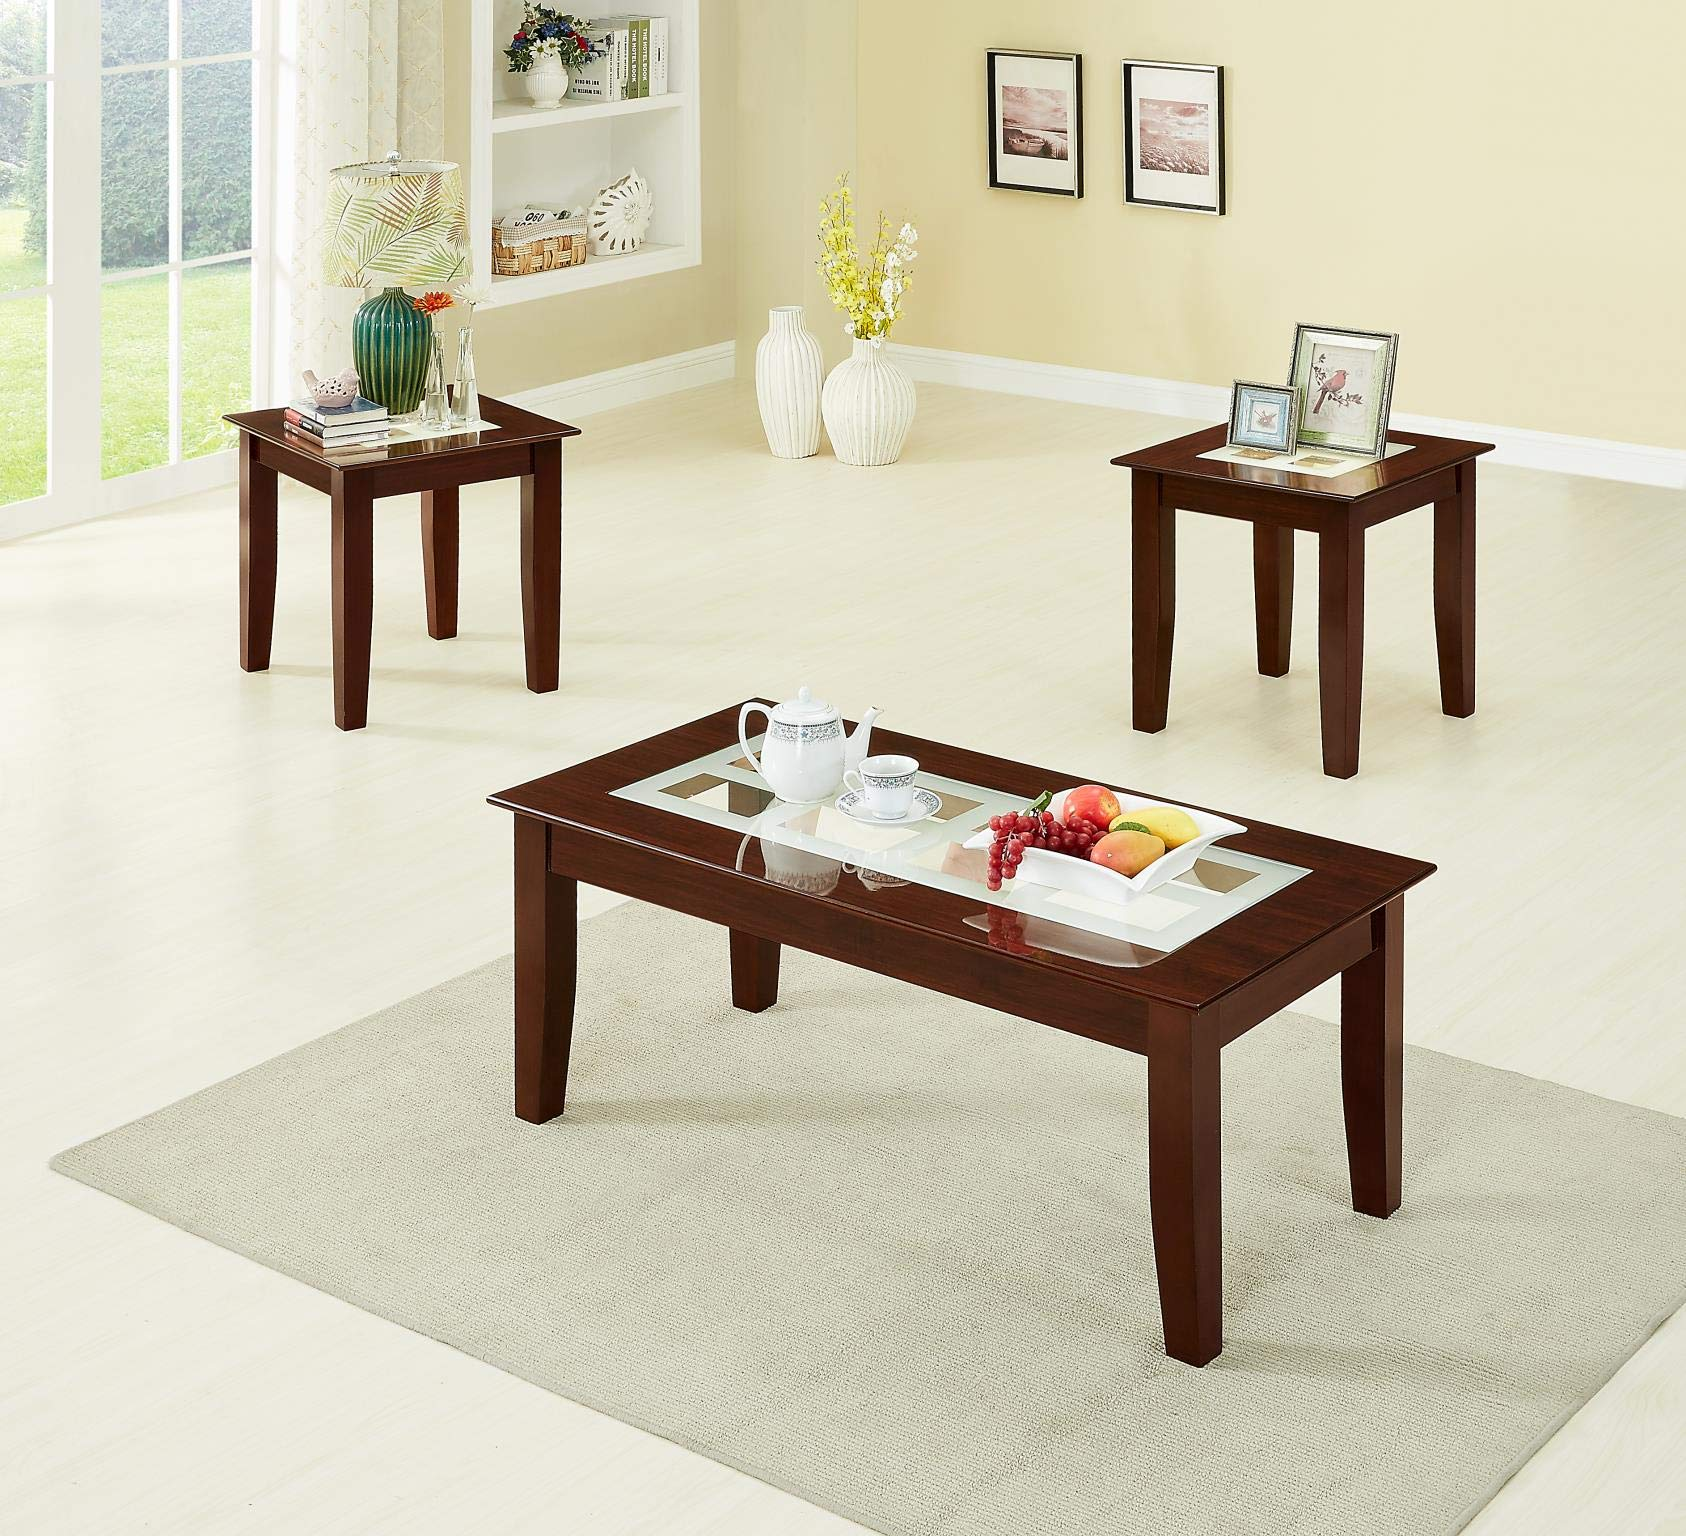 GTU Furntiure 3Pc Cappuccino Rectangular Glass Top Living Room Coffee & End Table Set